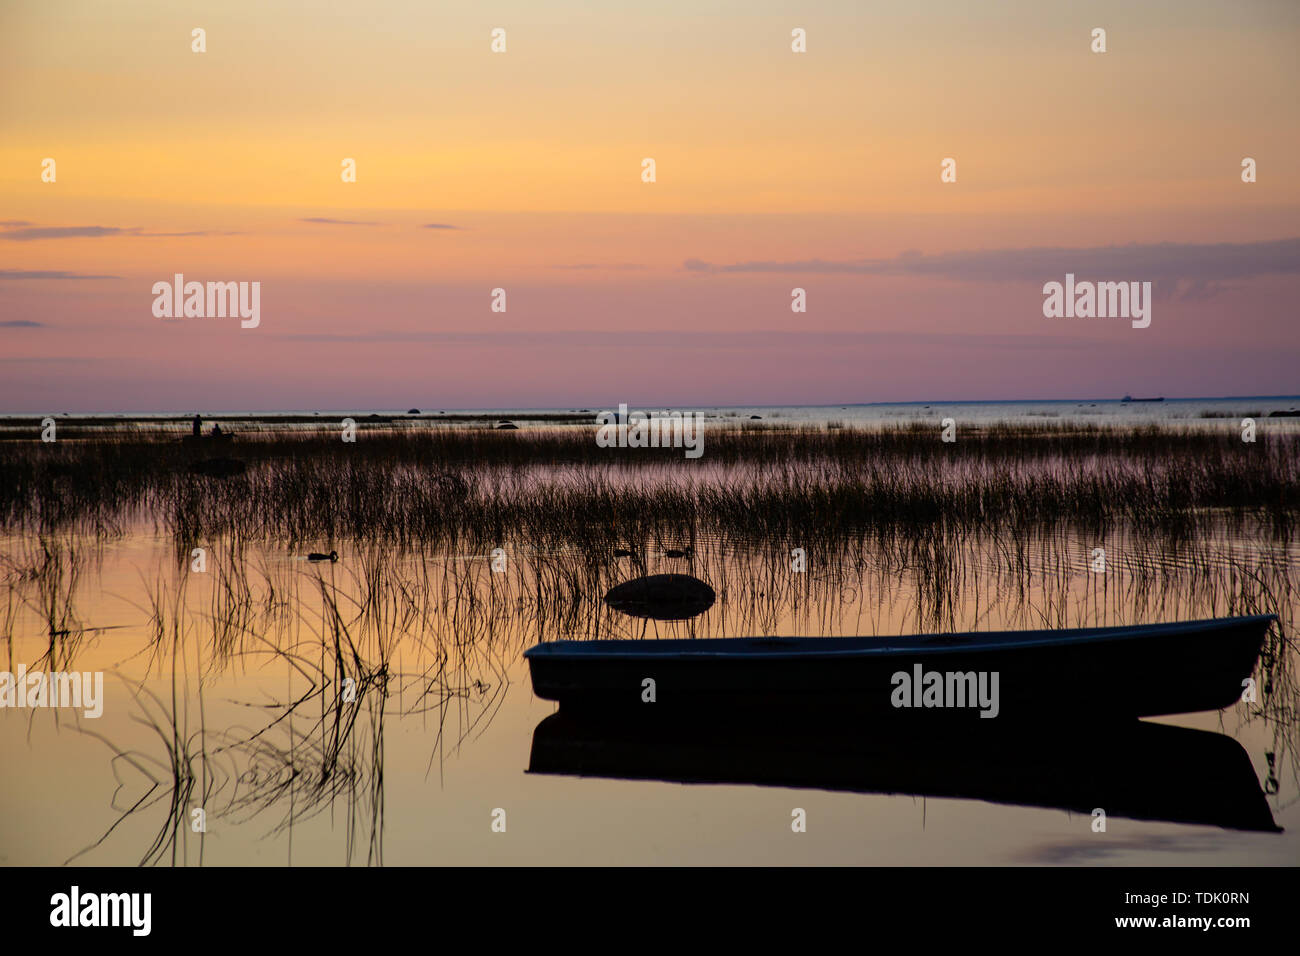 Silhouette of a fishing boat at anchor, reflected in the calm and clear water of the lake, covered with sedge at dusk against the background of a beautiful multi-colored sunset sky. - Stock Image